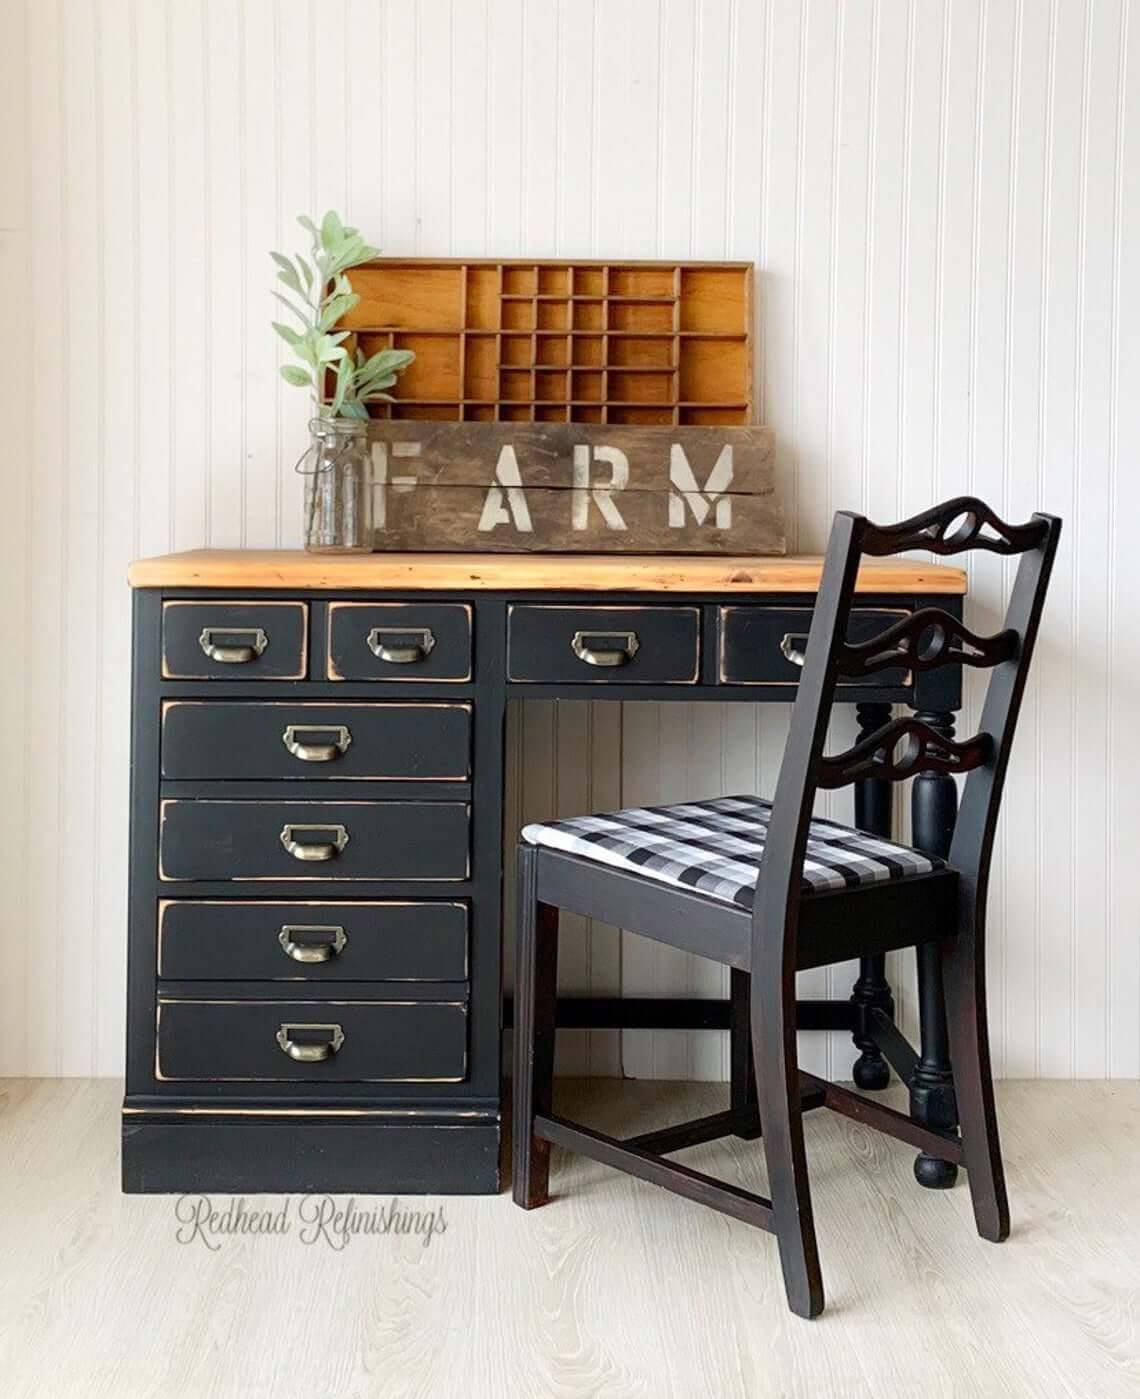 Old Fashioned Card Catalog Inspired Writer's Desk